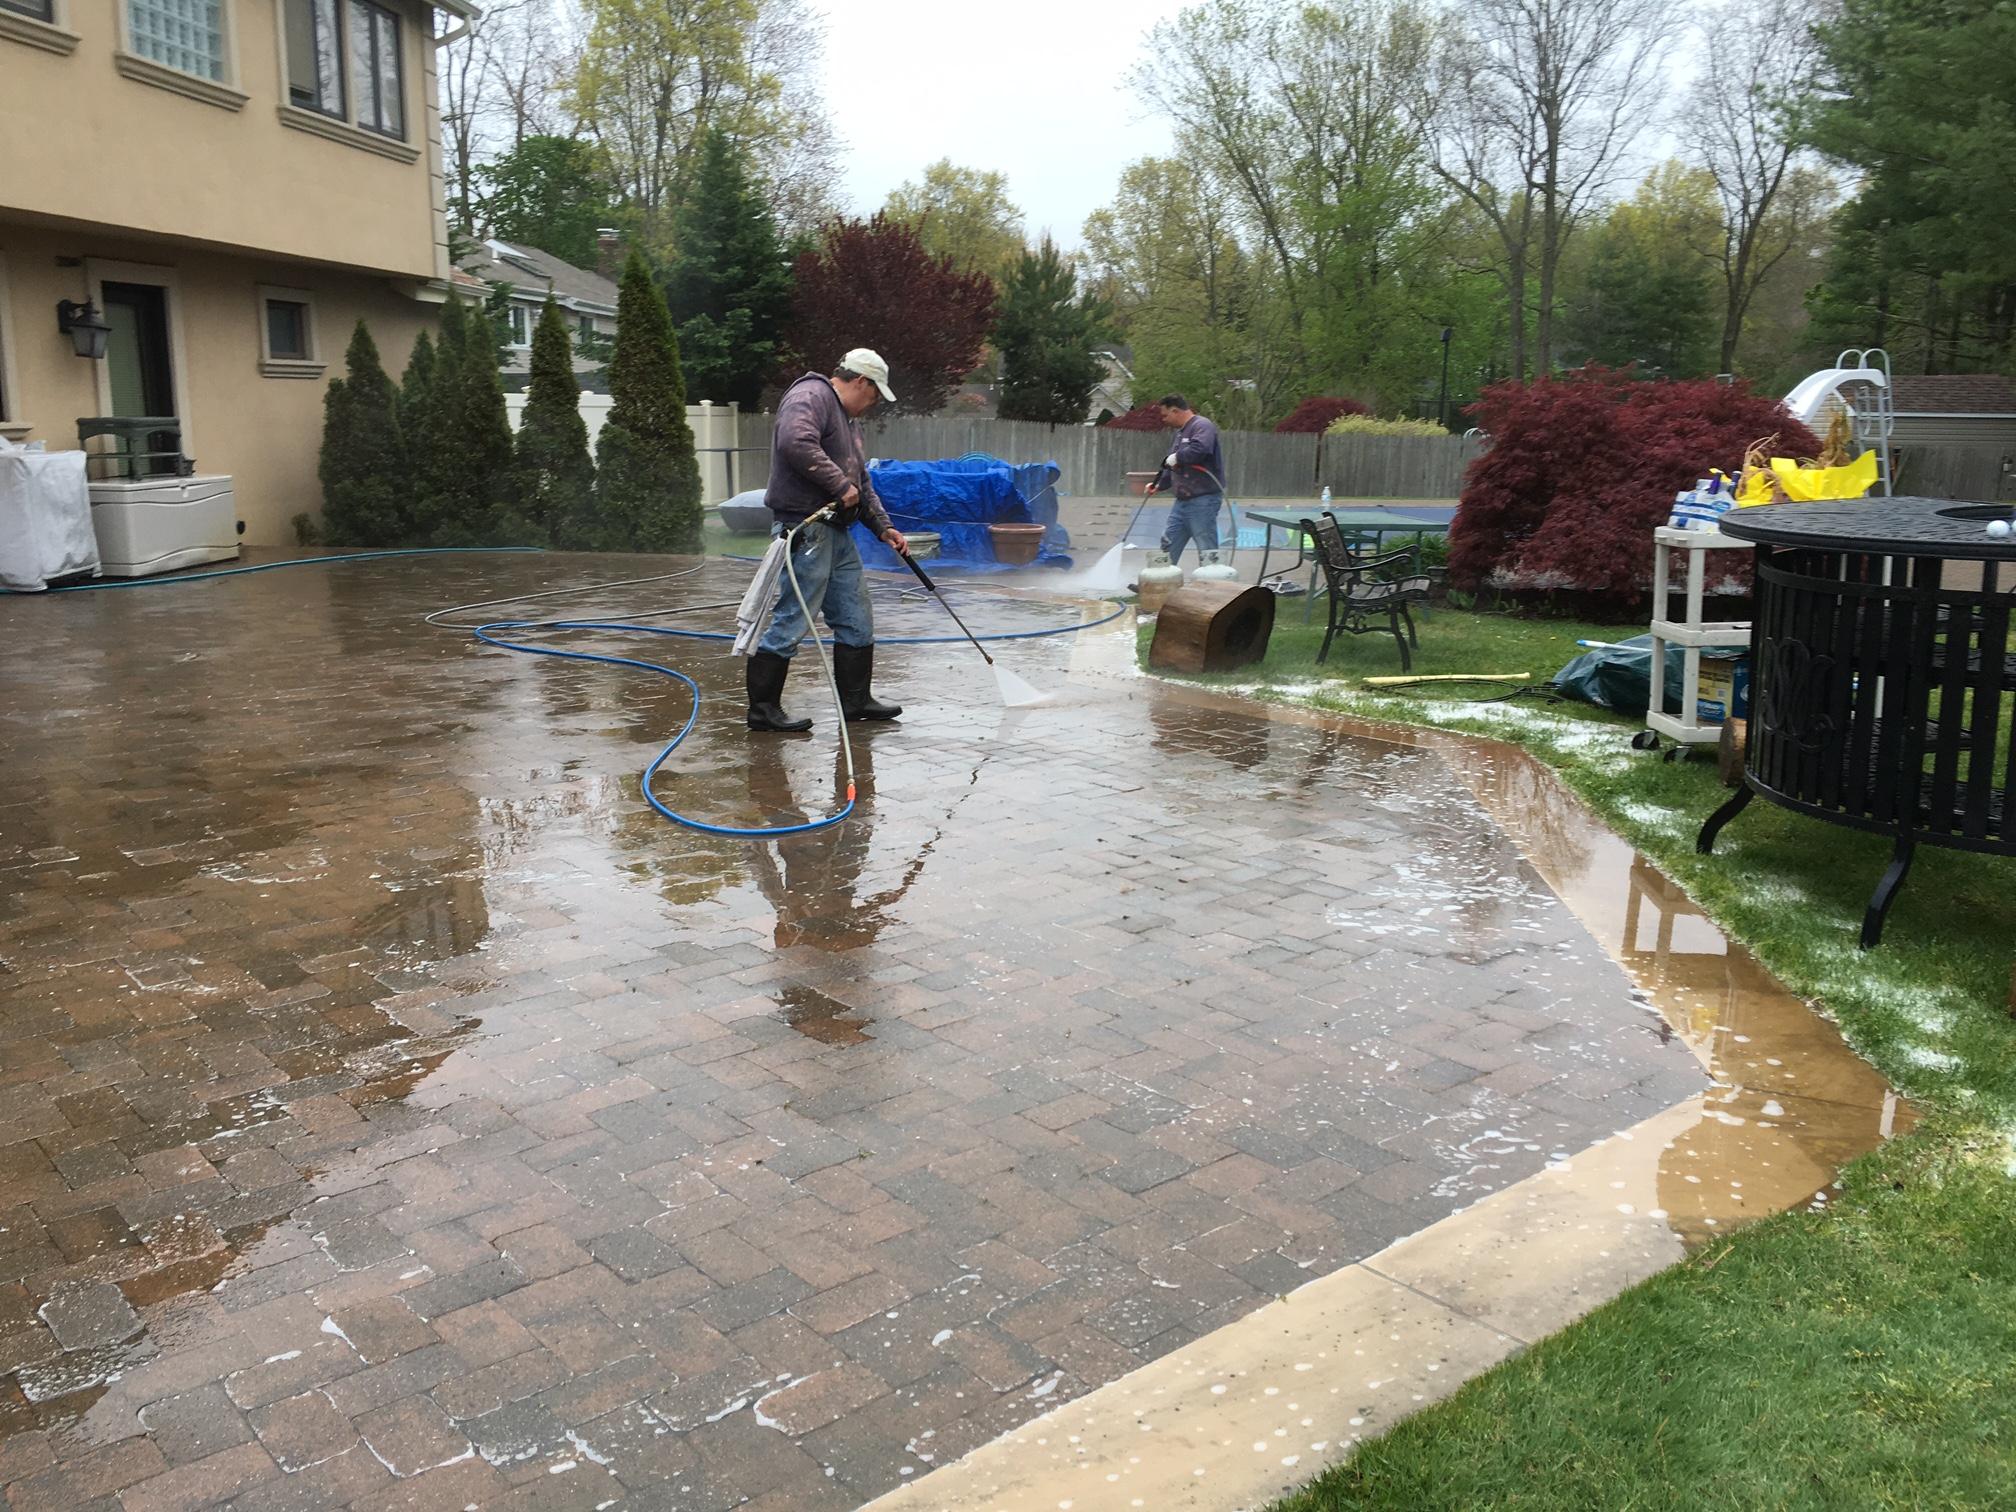 Get Your House and Business Ready for Summer with Pressure Washing!